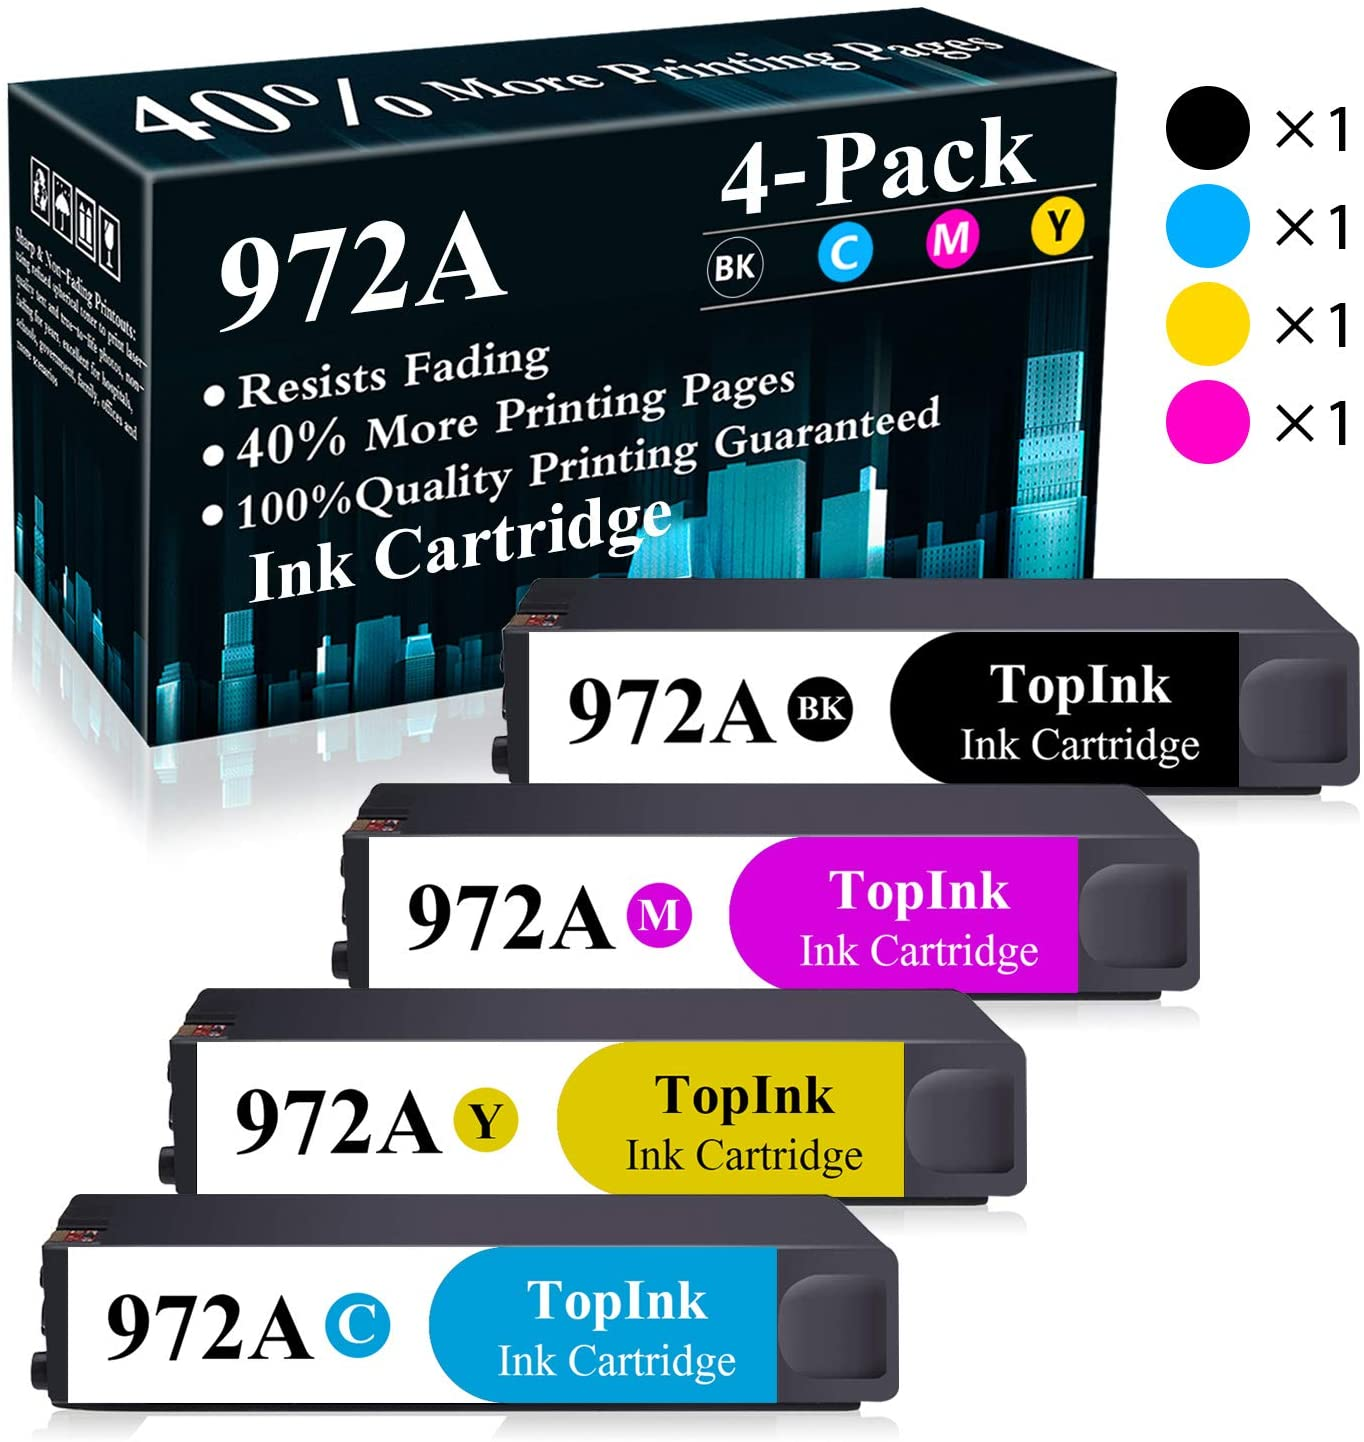 4-Pack (BK/C/M/Y) 972A Black,Cyan,Yellow,Magenta Remanufactured Ink Cartridge Replacement for HP PageWide Pro 452dn 452dw 552dw 477dn 477dw 577dw MFP P57750DW MFP P55250DW Printer,Sold by TopInk